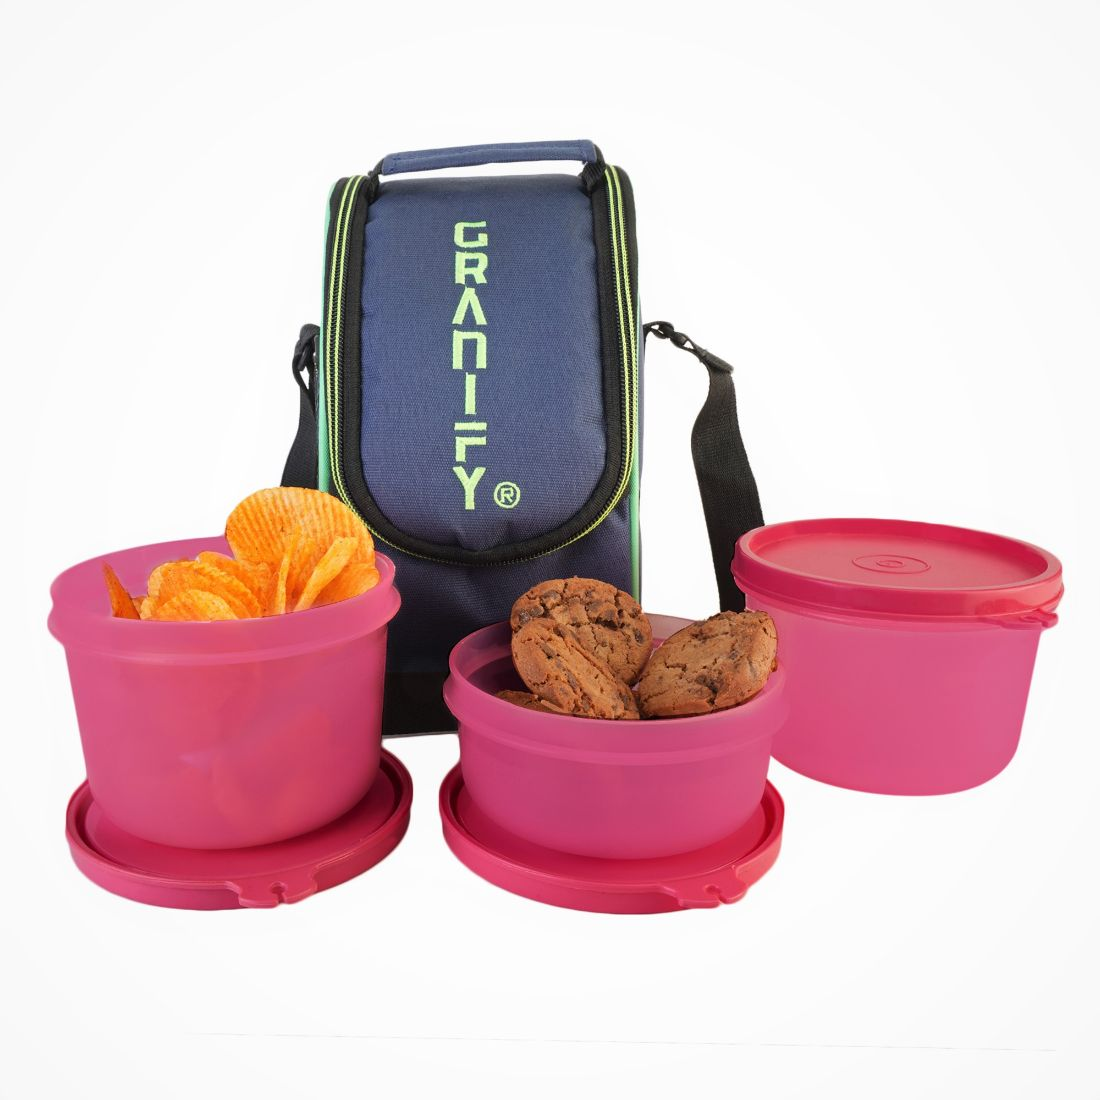 GRANIFY Lunch Box   3 Containers With Bag Cover   D